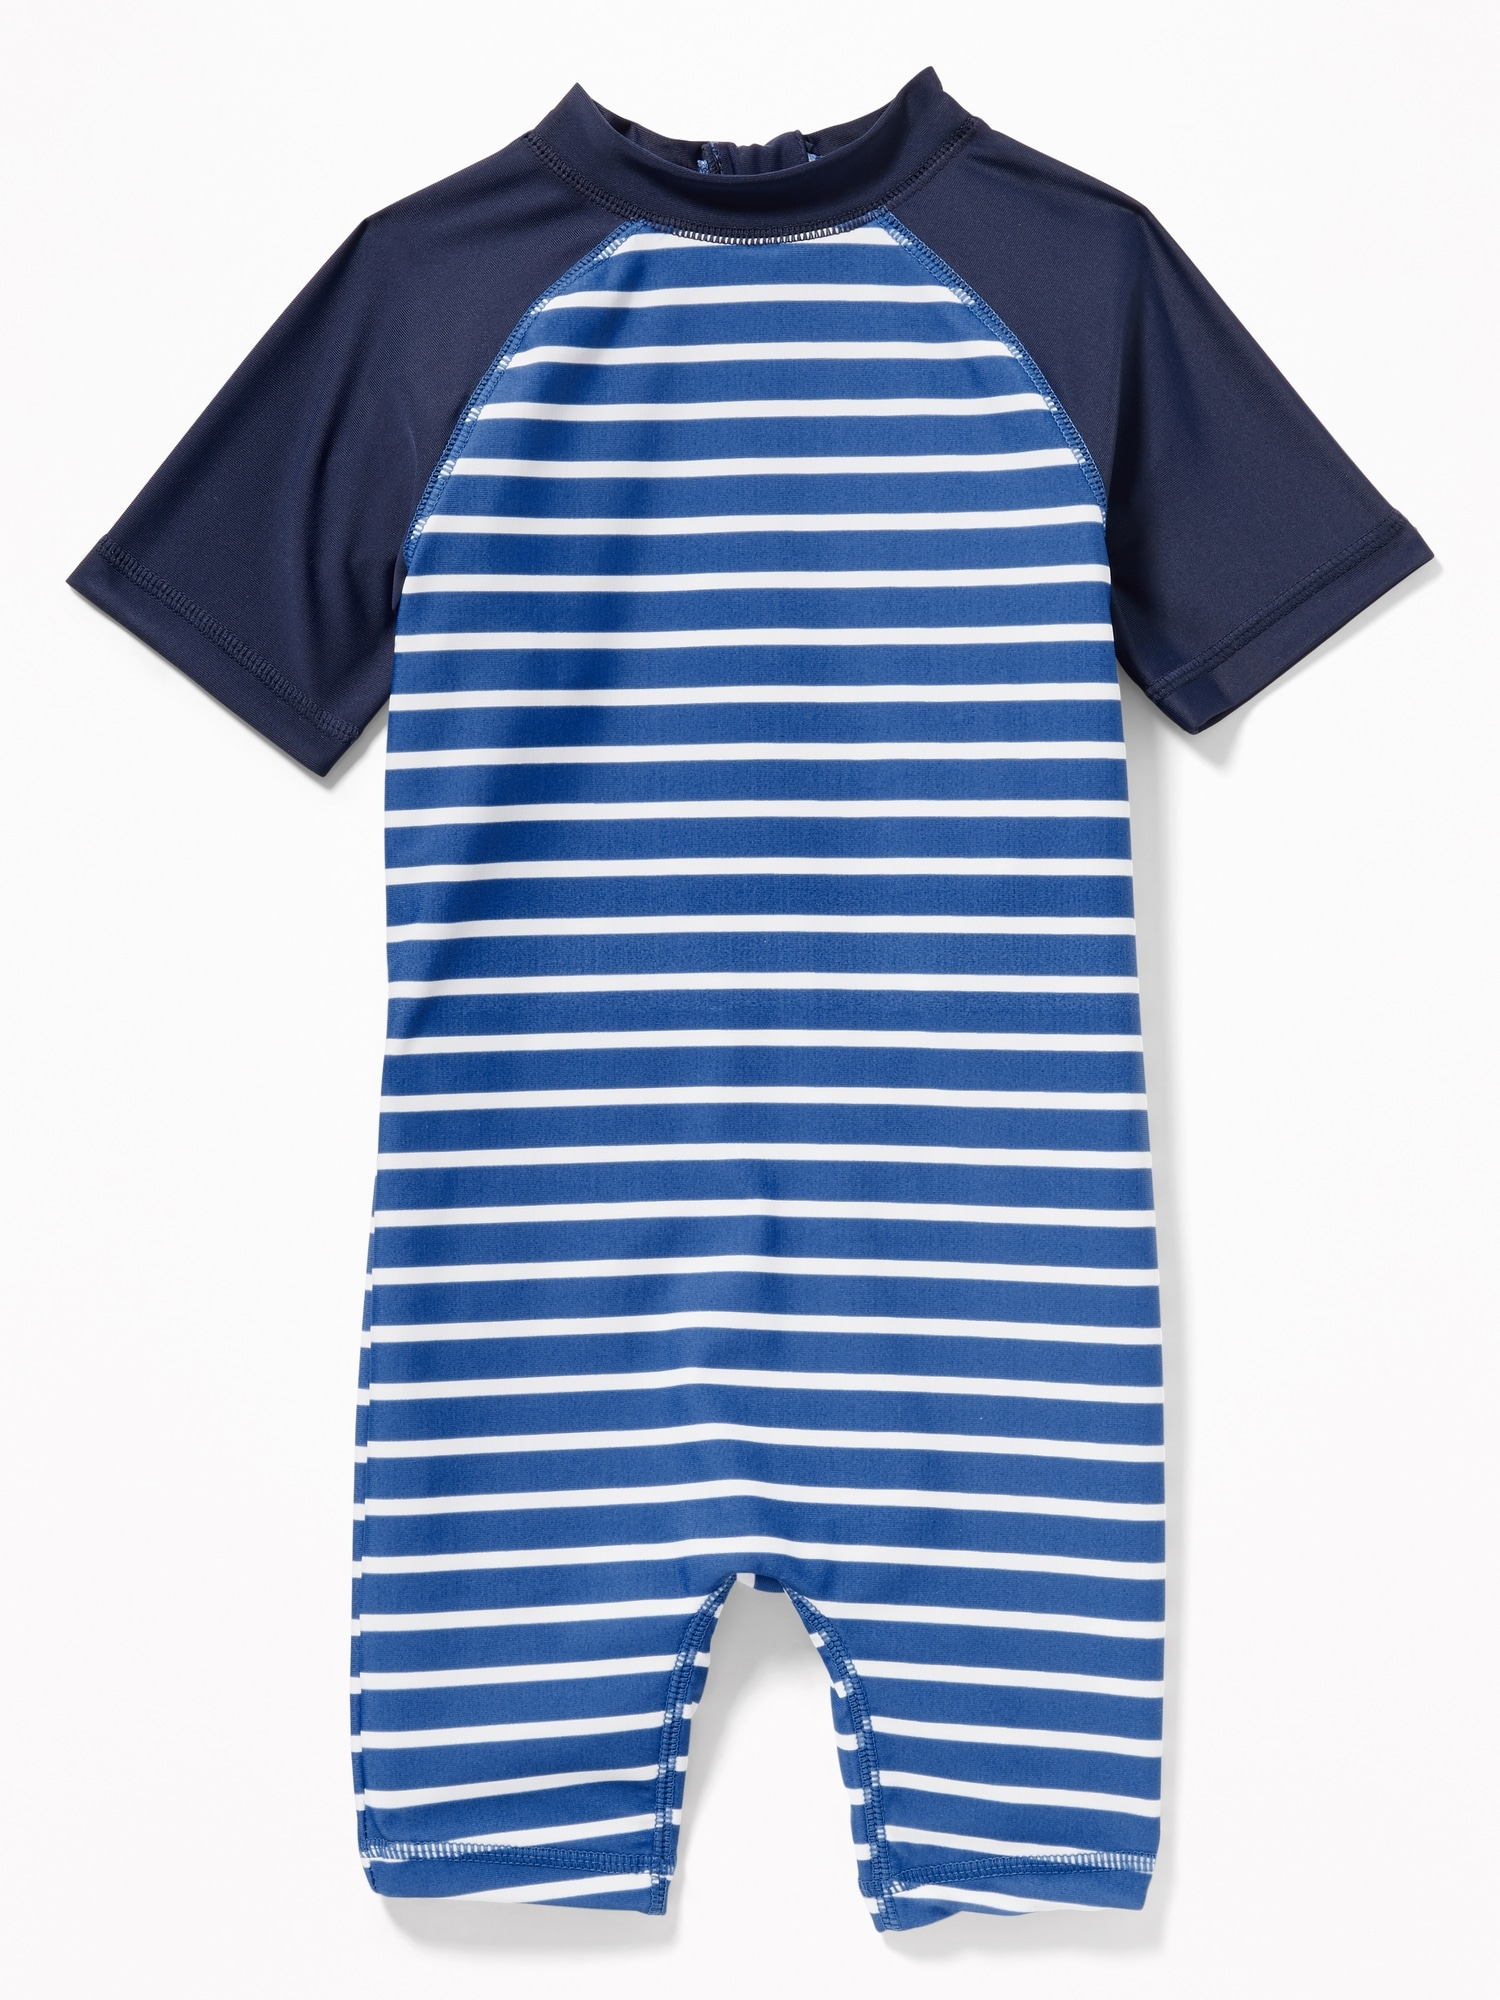 66247332 Rashguard One-Piece Swimsuit for Toddler Boys | Old Navy